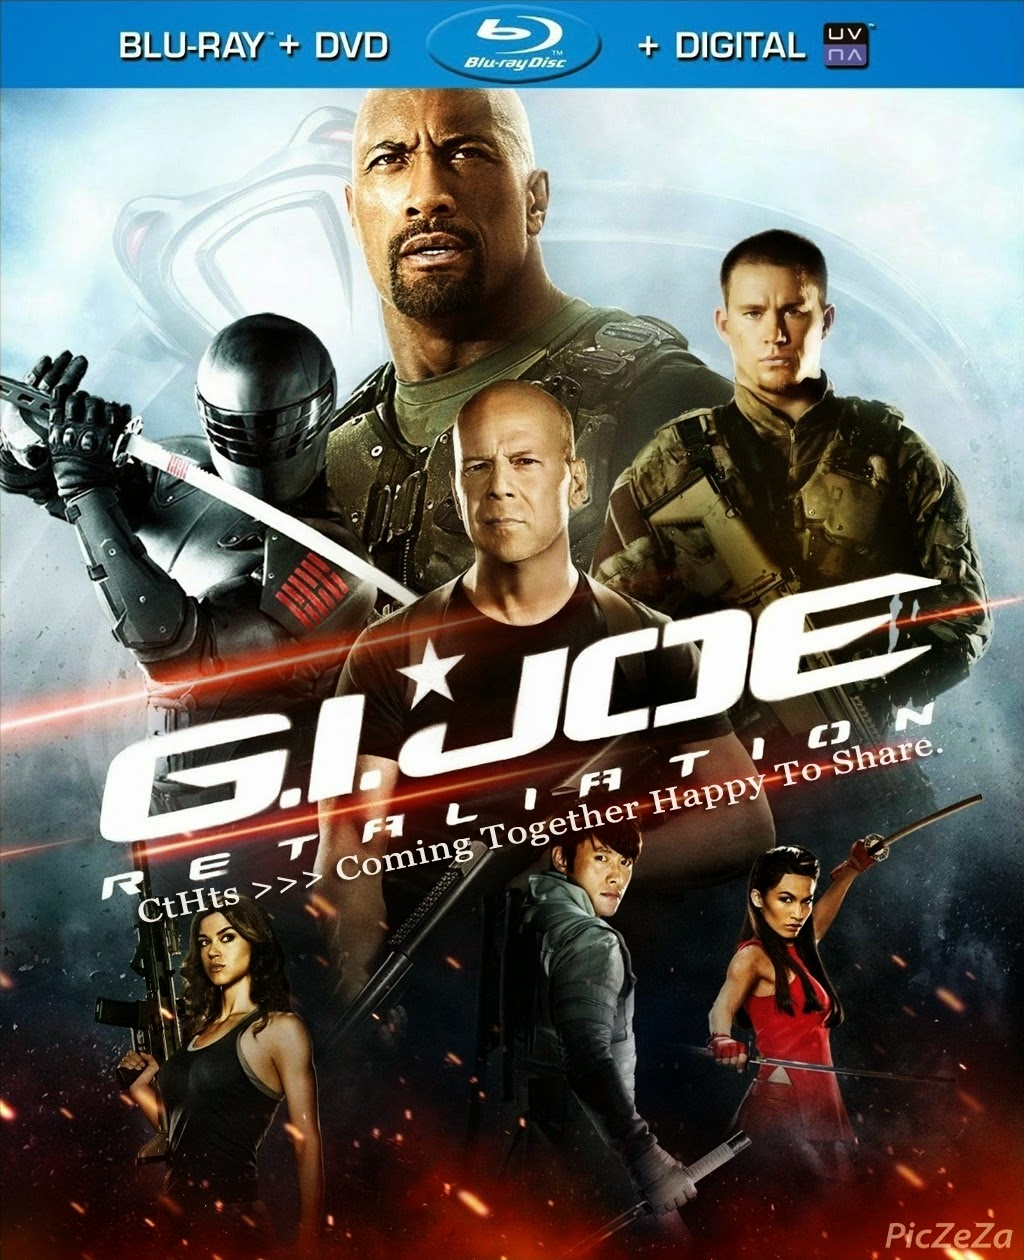 G.I. Joe: Retaliation 2013 Extended Action Cut